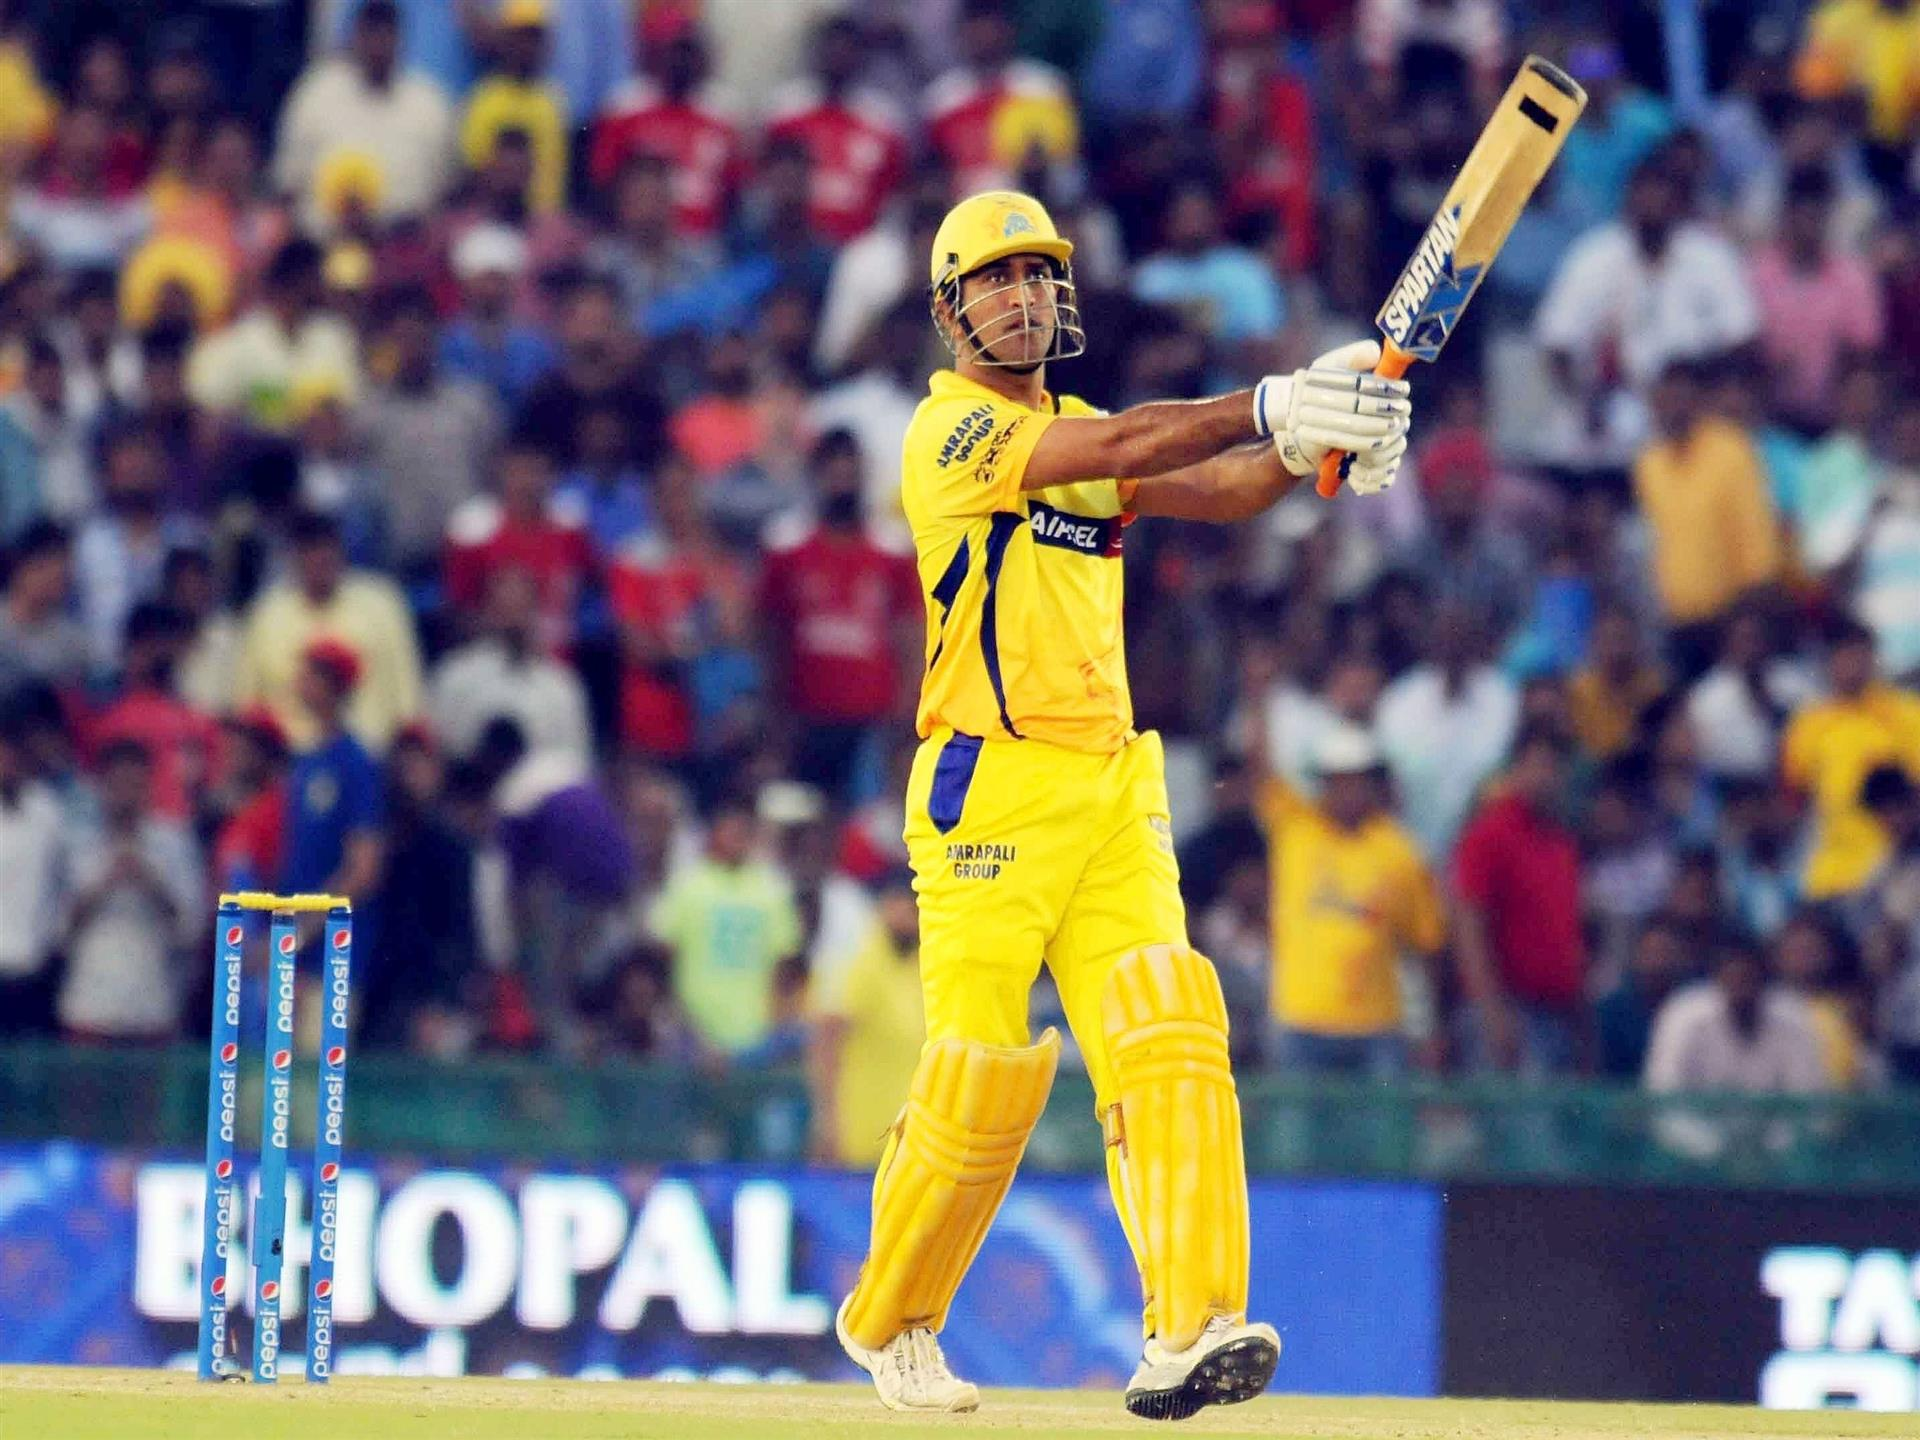 1920x1440 MS Dhoni in CSK IPL Match Wallpaper